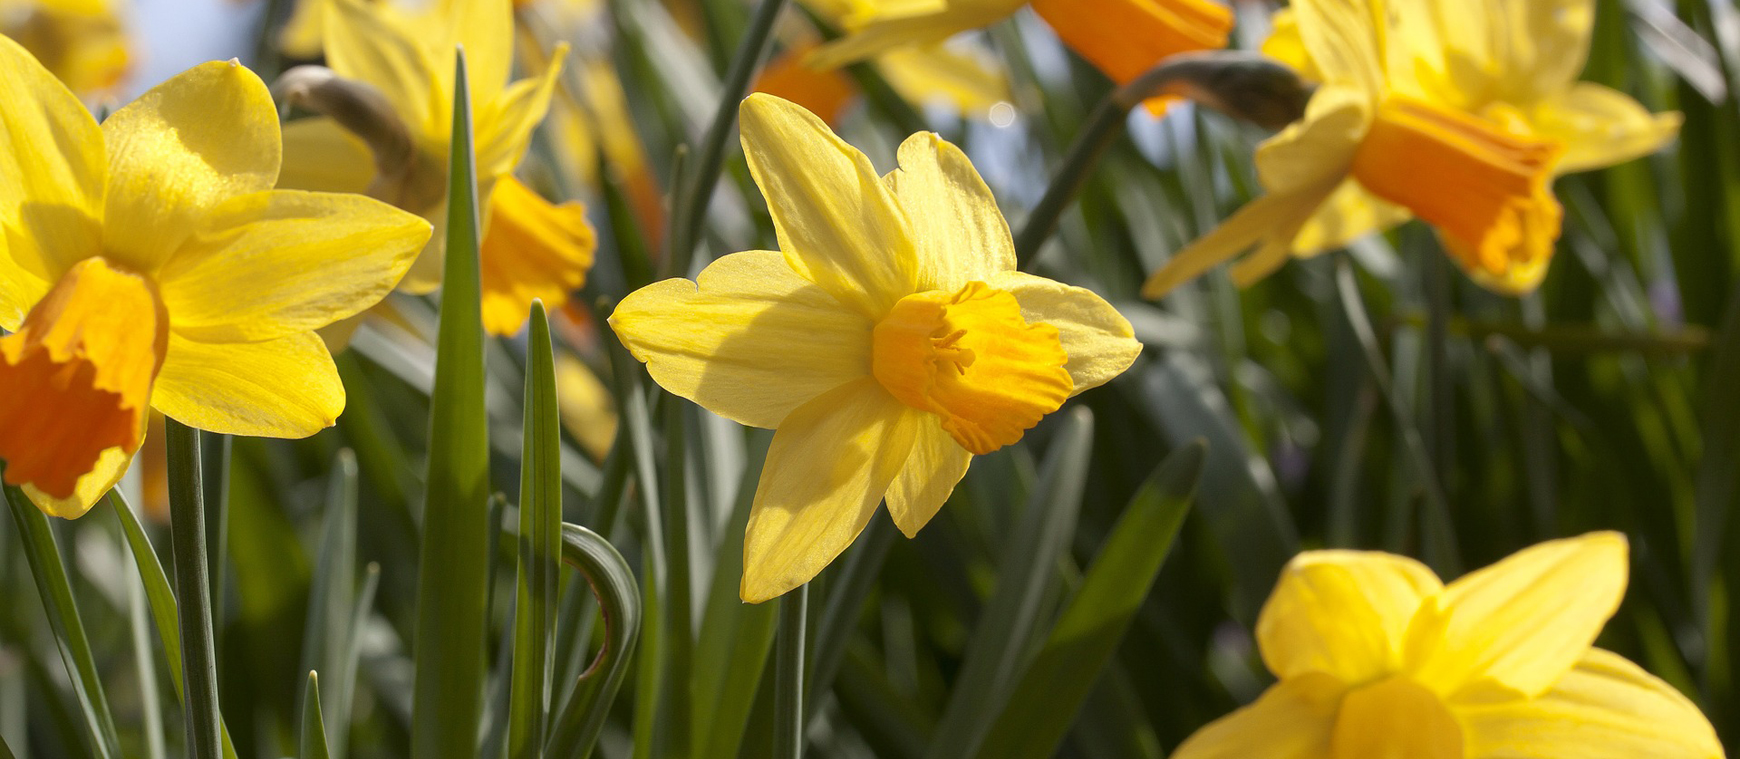 Hospice Daffodils arrive March 9